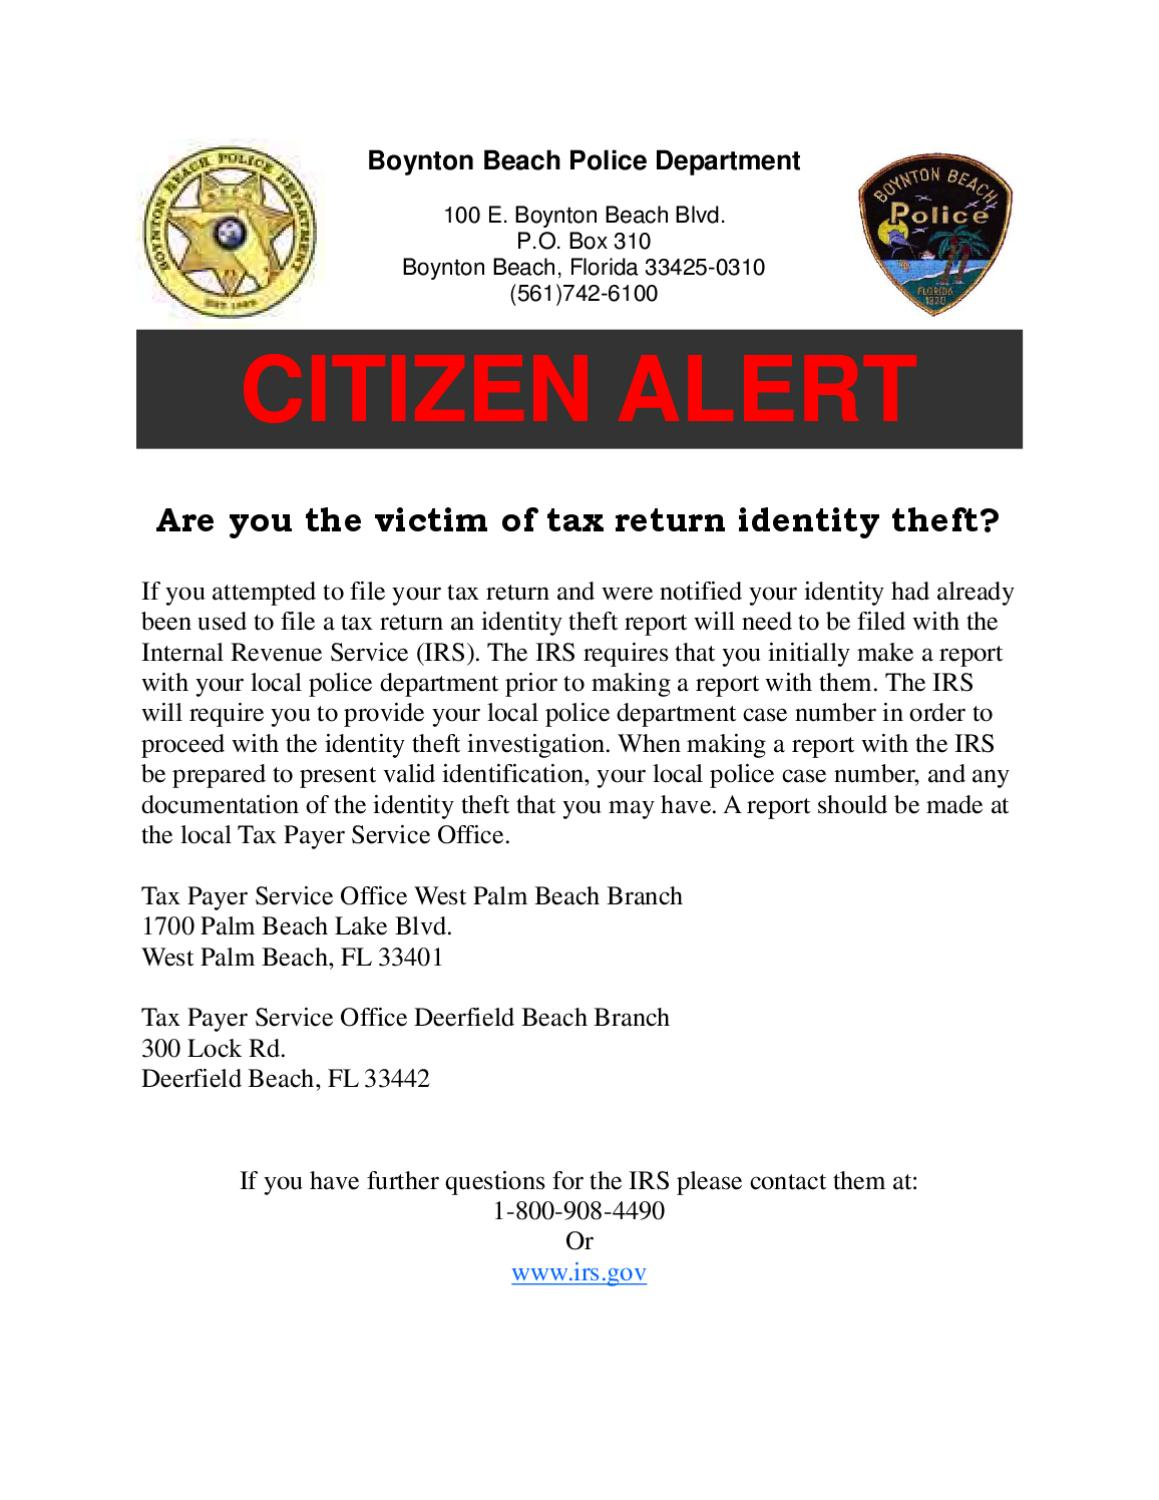 Citizen Alert  Tax Return Identity Theft By Boynton Beach. Family Links Pittsburgh Pa Business Bad Debt. Business Negotiation Training. Associates Degree In Early Childhood. Discount Tire Orem Utah Employee Gps Tracking. Online Hotel Reservation Sites. Internet And Home Phone Local Area Connection. Html Email Embed Image Home Team Pest Defence. 2013 Jeep Wrangler Check Engine Light